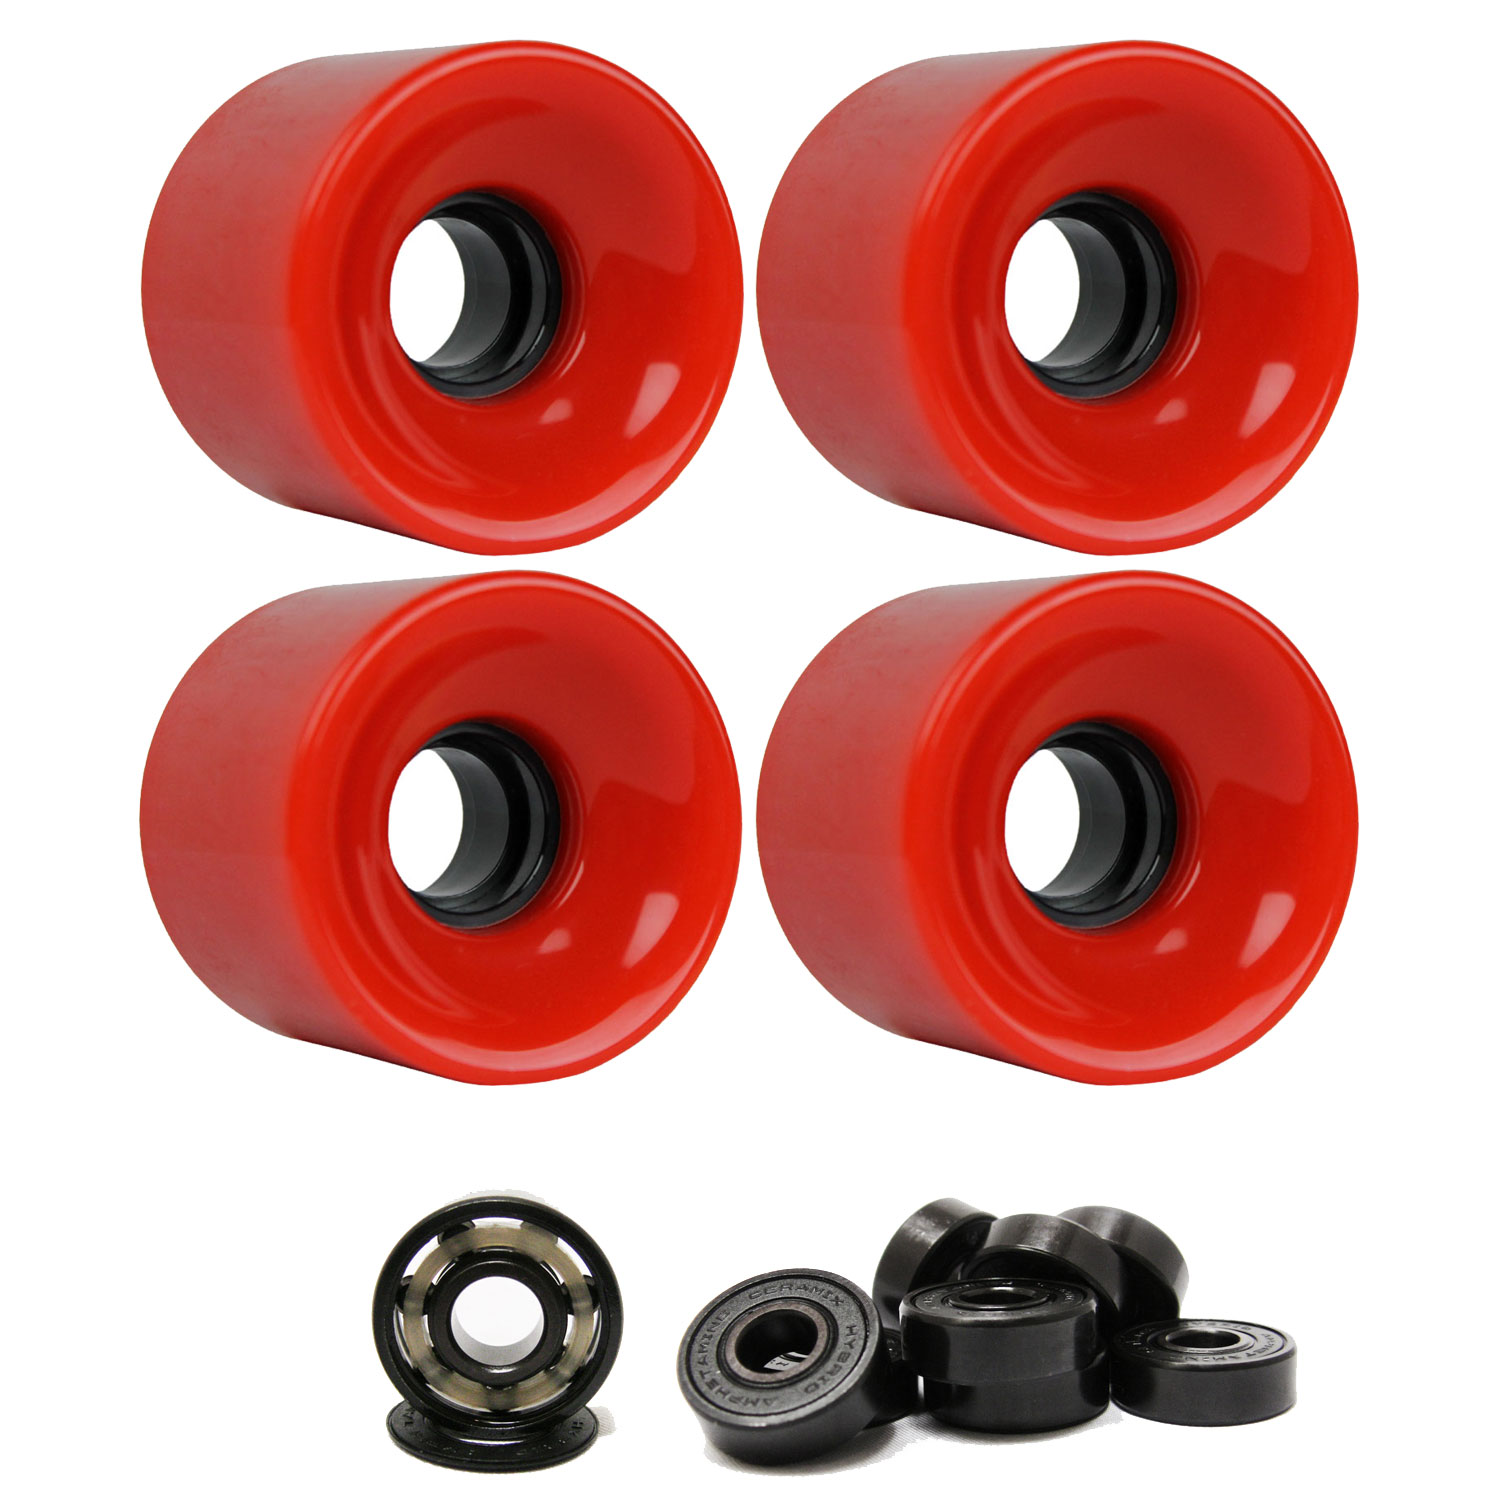 LONGBOARD CRUISER WHEELS 62mm x 51.5mm 83A 186C Red CERAMIC BEARINGS